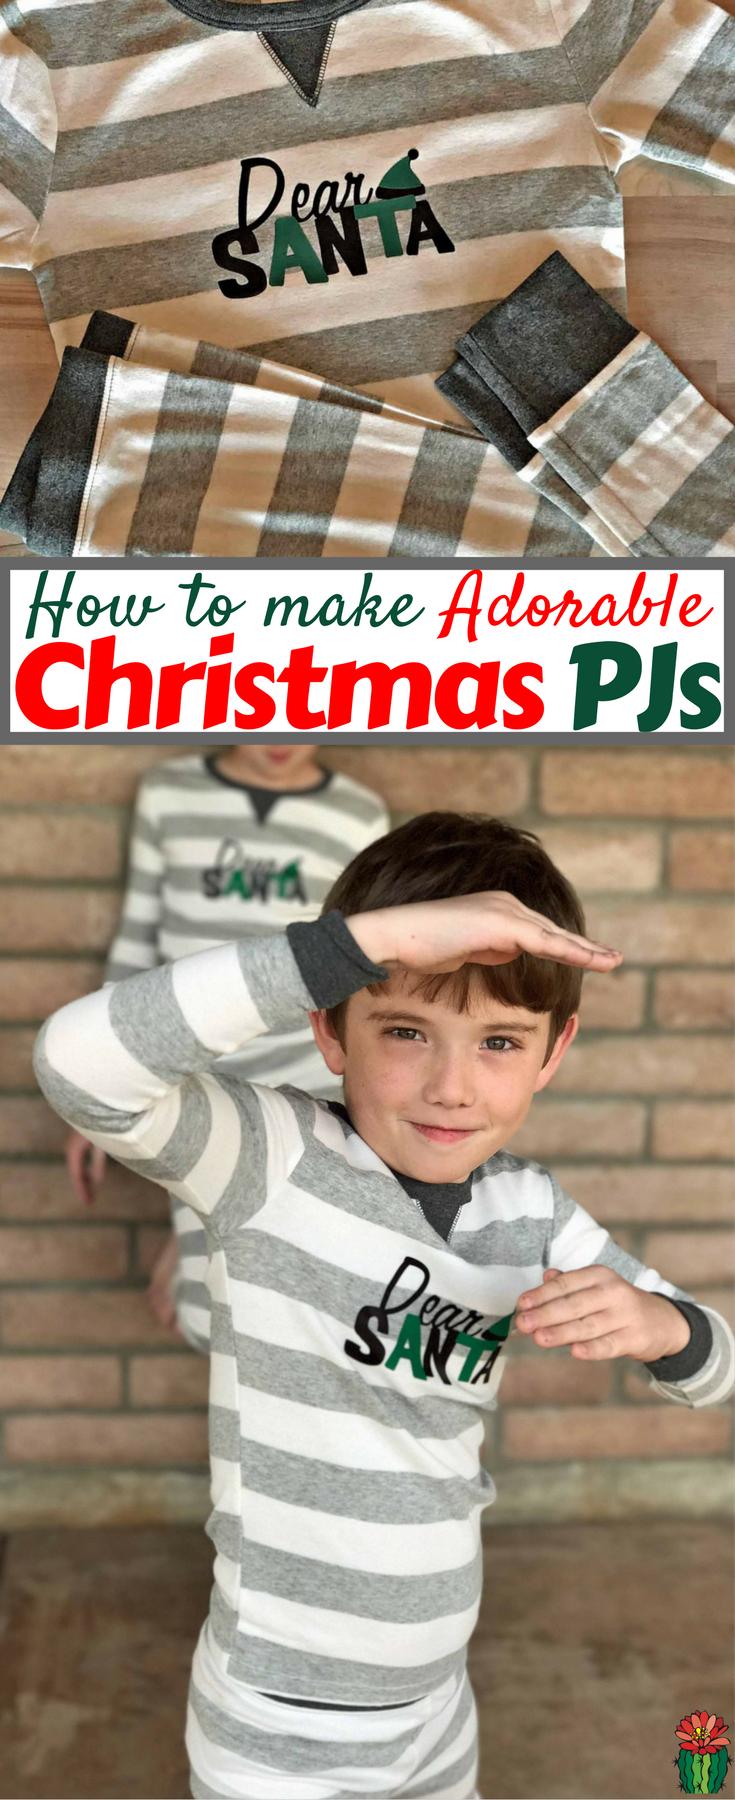 Who else loves matching Christmas jammies? Did you realize how easy it is to DIY Christmas PJs for your whole family? Come see how with the Cricut Maker!